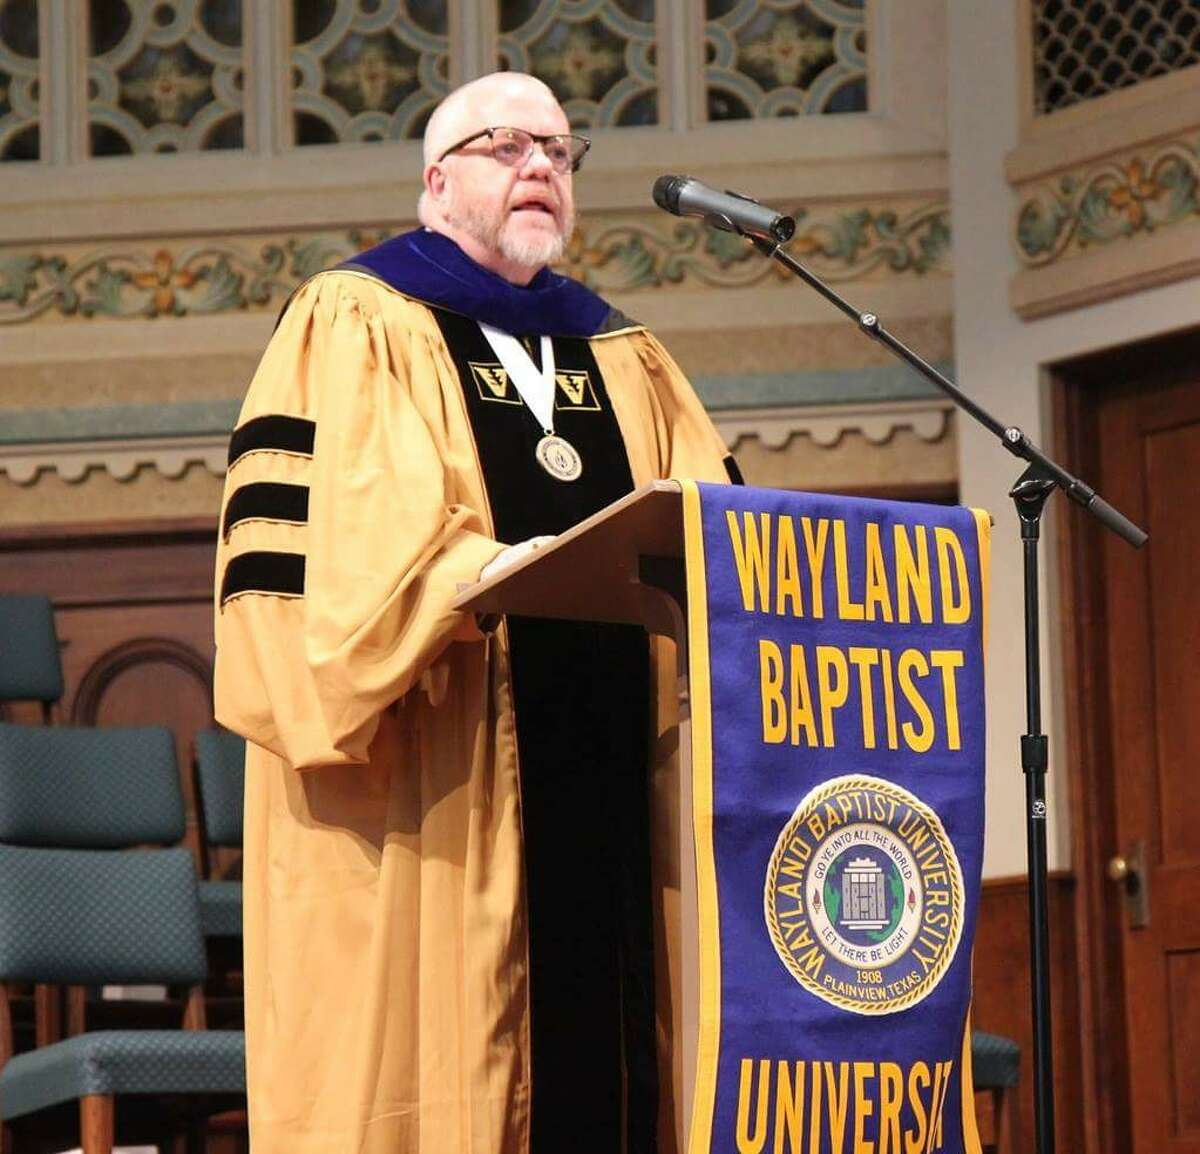 Michael Davis is a 1987 graduate of WBU. He will be honored as a distinguished alumnus during the 2021 Homecoming celebrations.